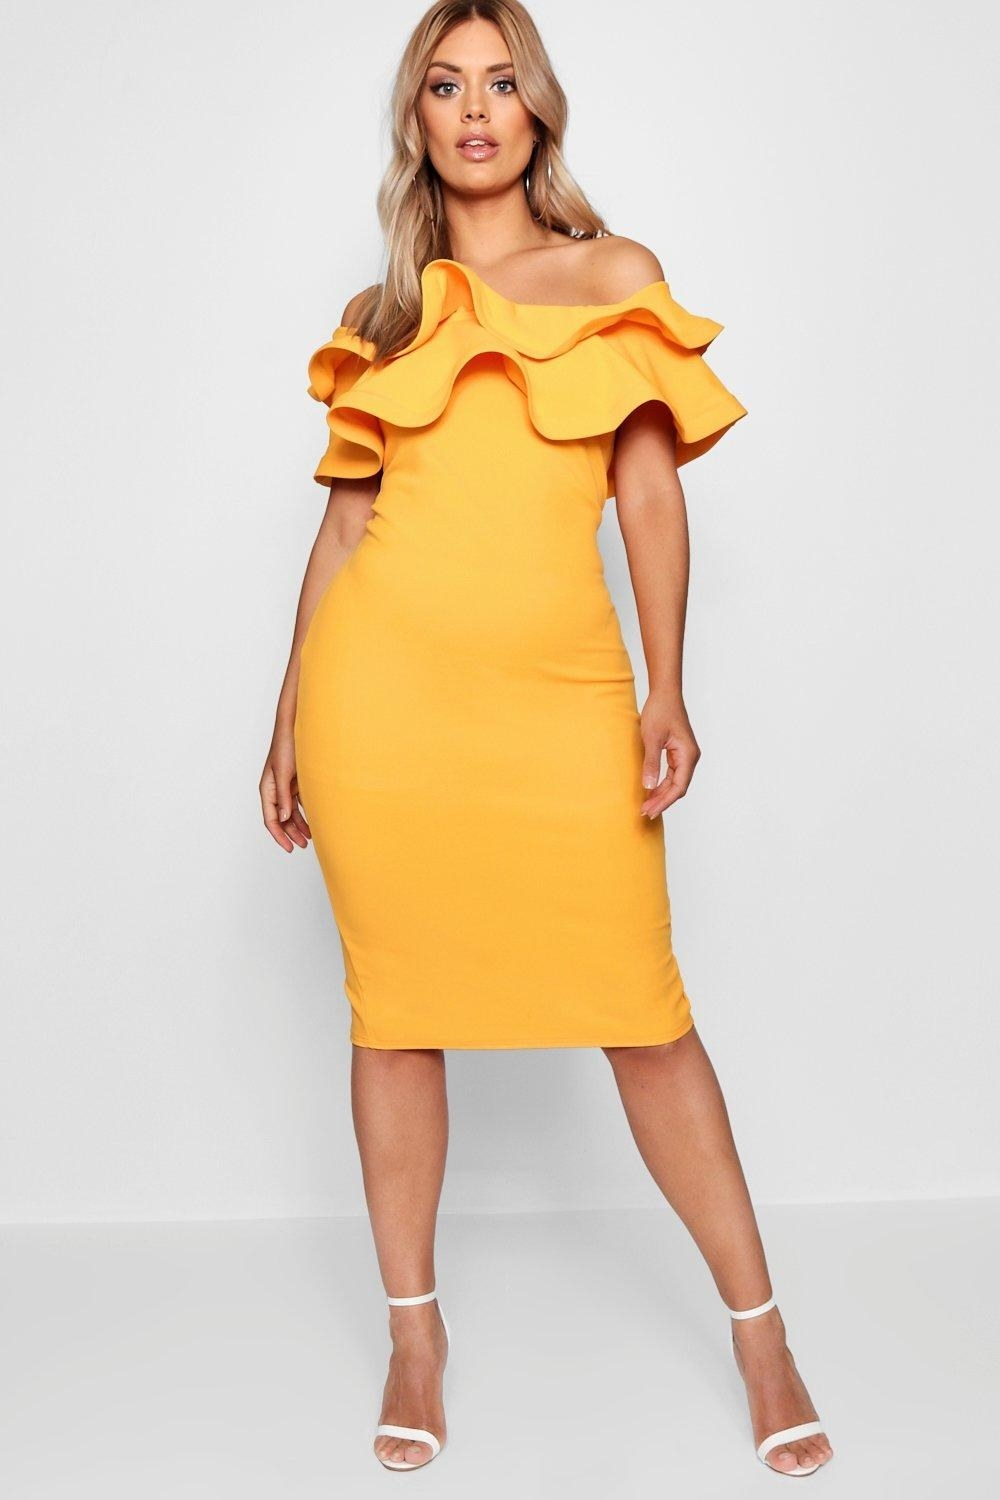 Get it from Boohoo for $20 (available in sizes 12-20 and in two colors).